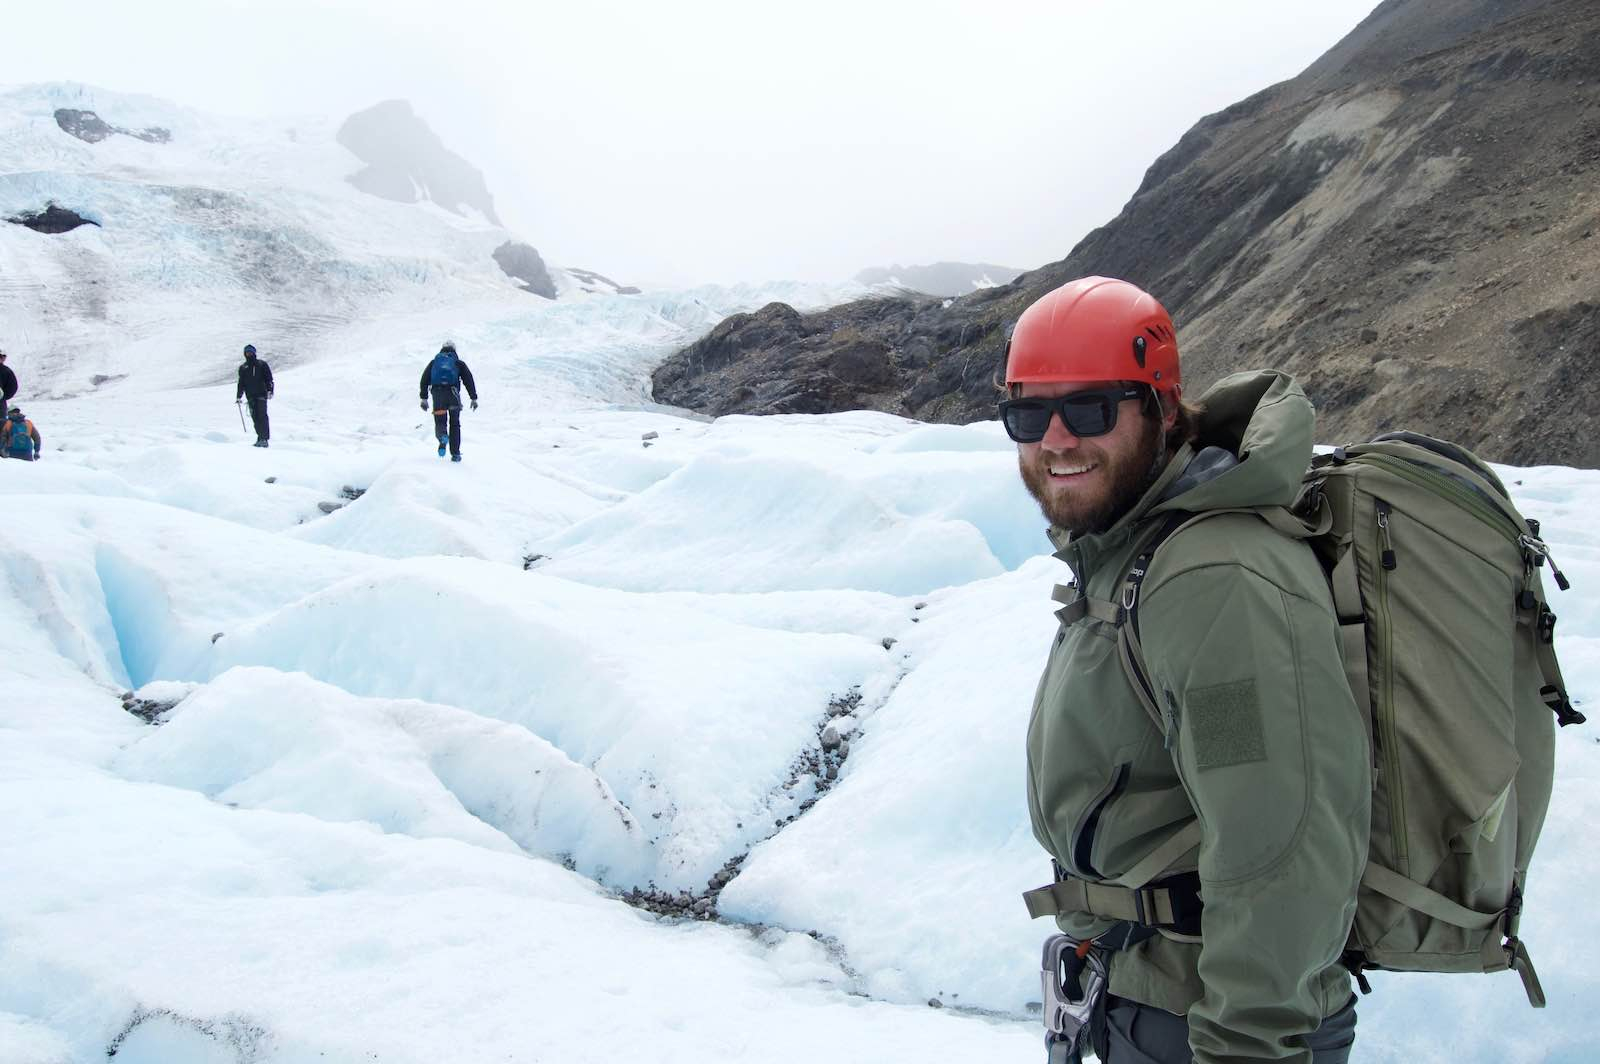 The grand finale of the ascent: ice trekking on puesto cagliero